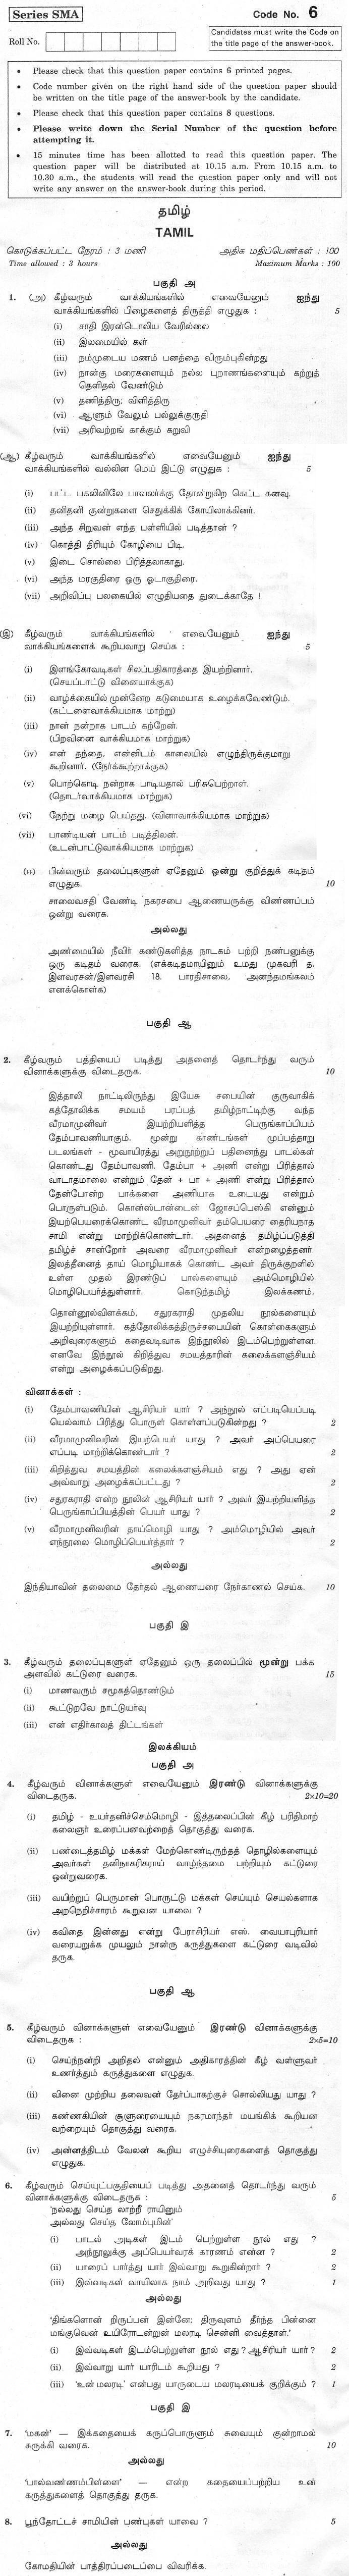 CBSE Class XII Previous Year Question Paper 2012 Tamil